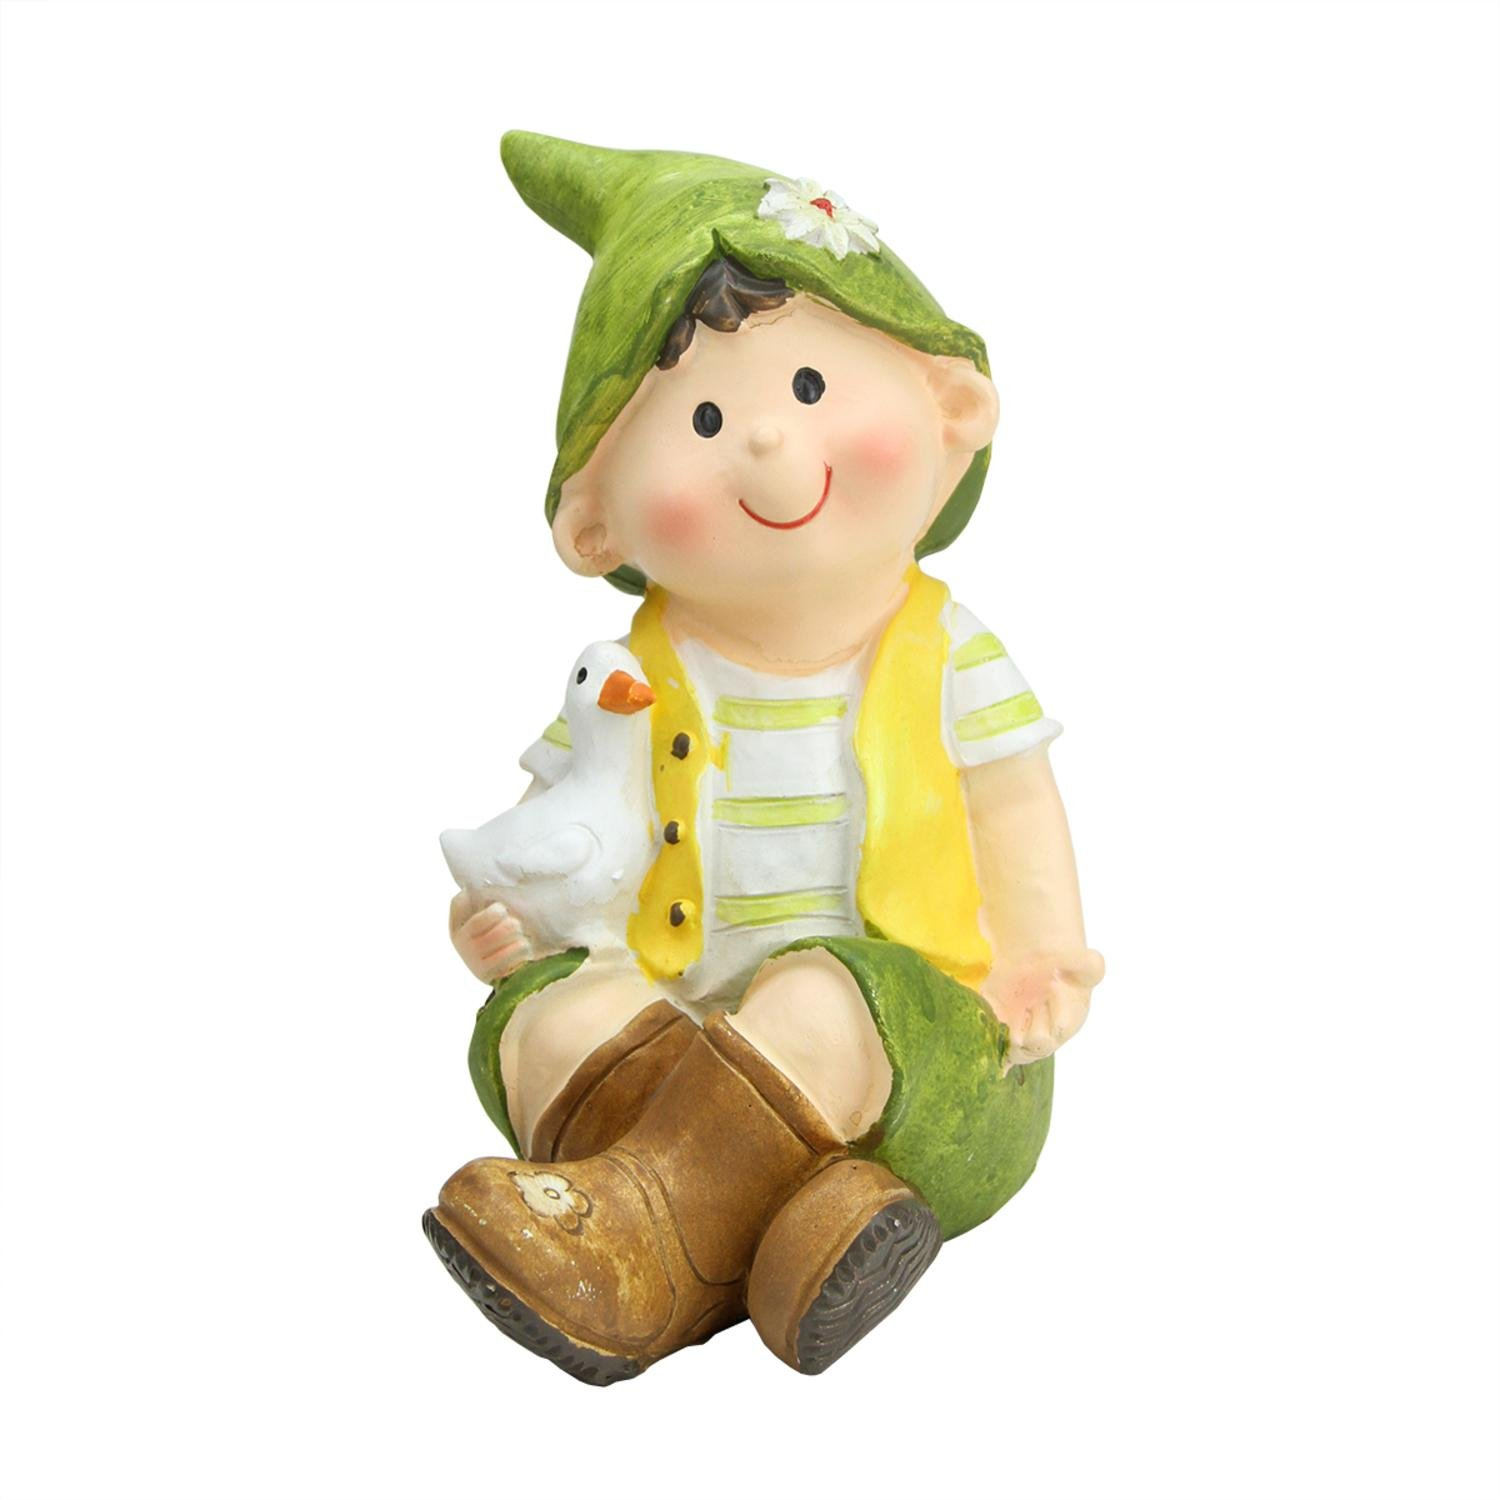 Northlight 7'' Young Boy Gnome Sitting with Duck Spring Outdoor Garden Patio Figure by Northlight